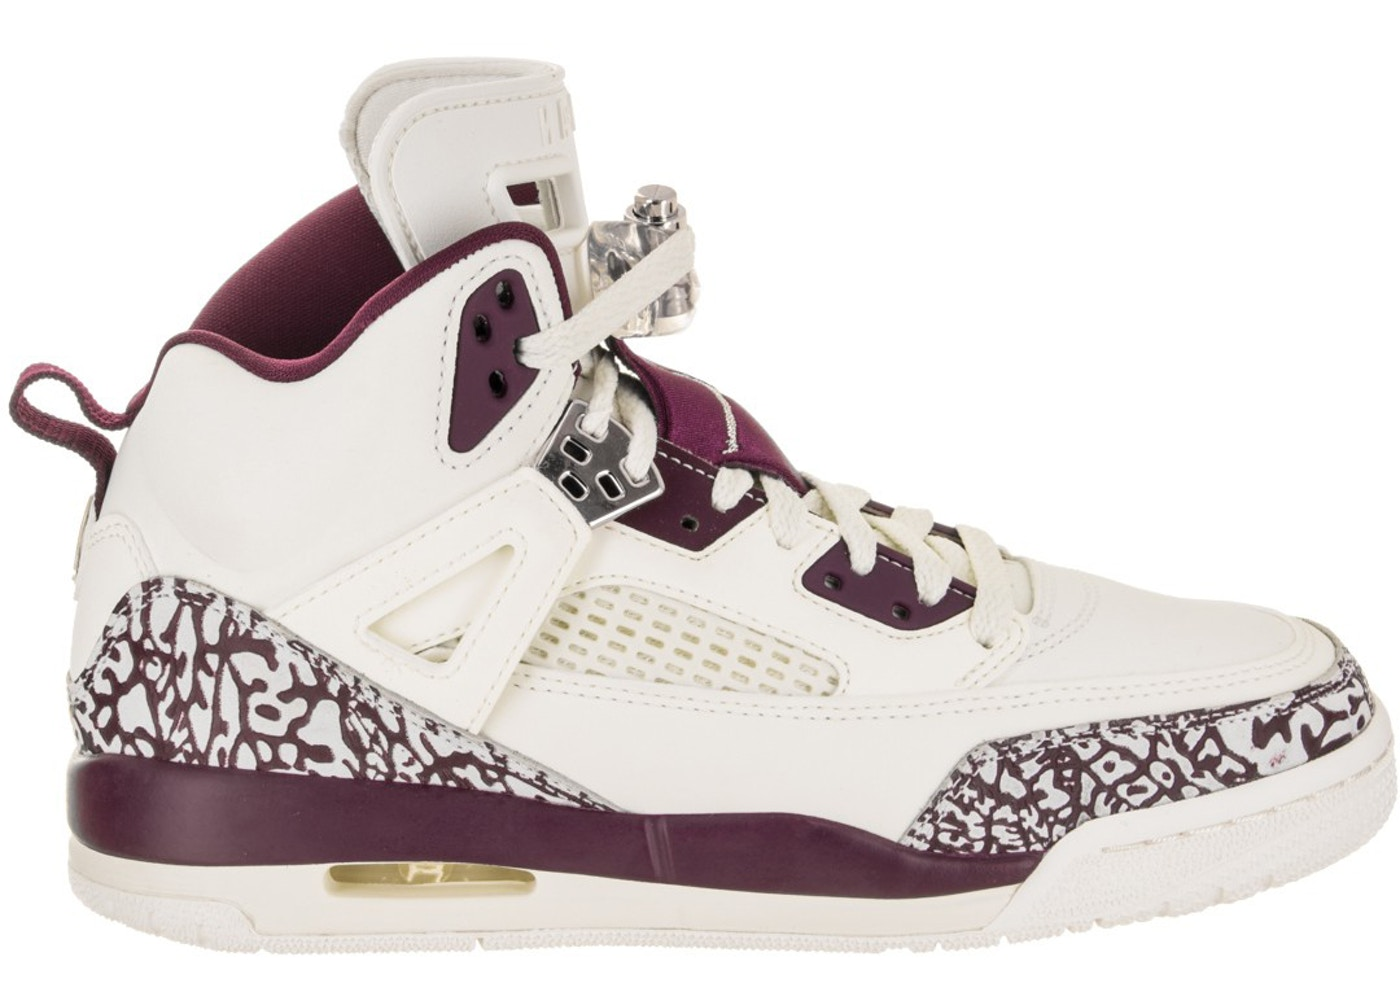 check out a6cdd 61cfc Jordan Spizike Bordeaux (GS) - 535712-132